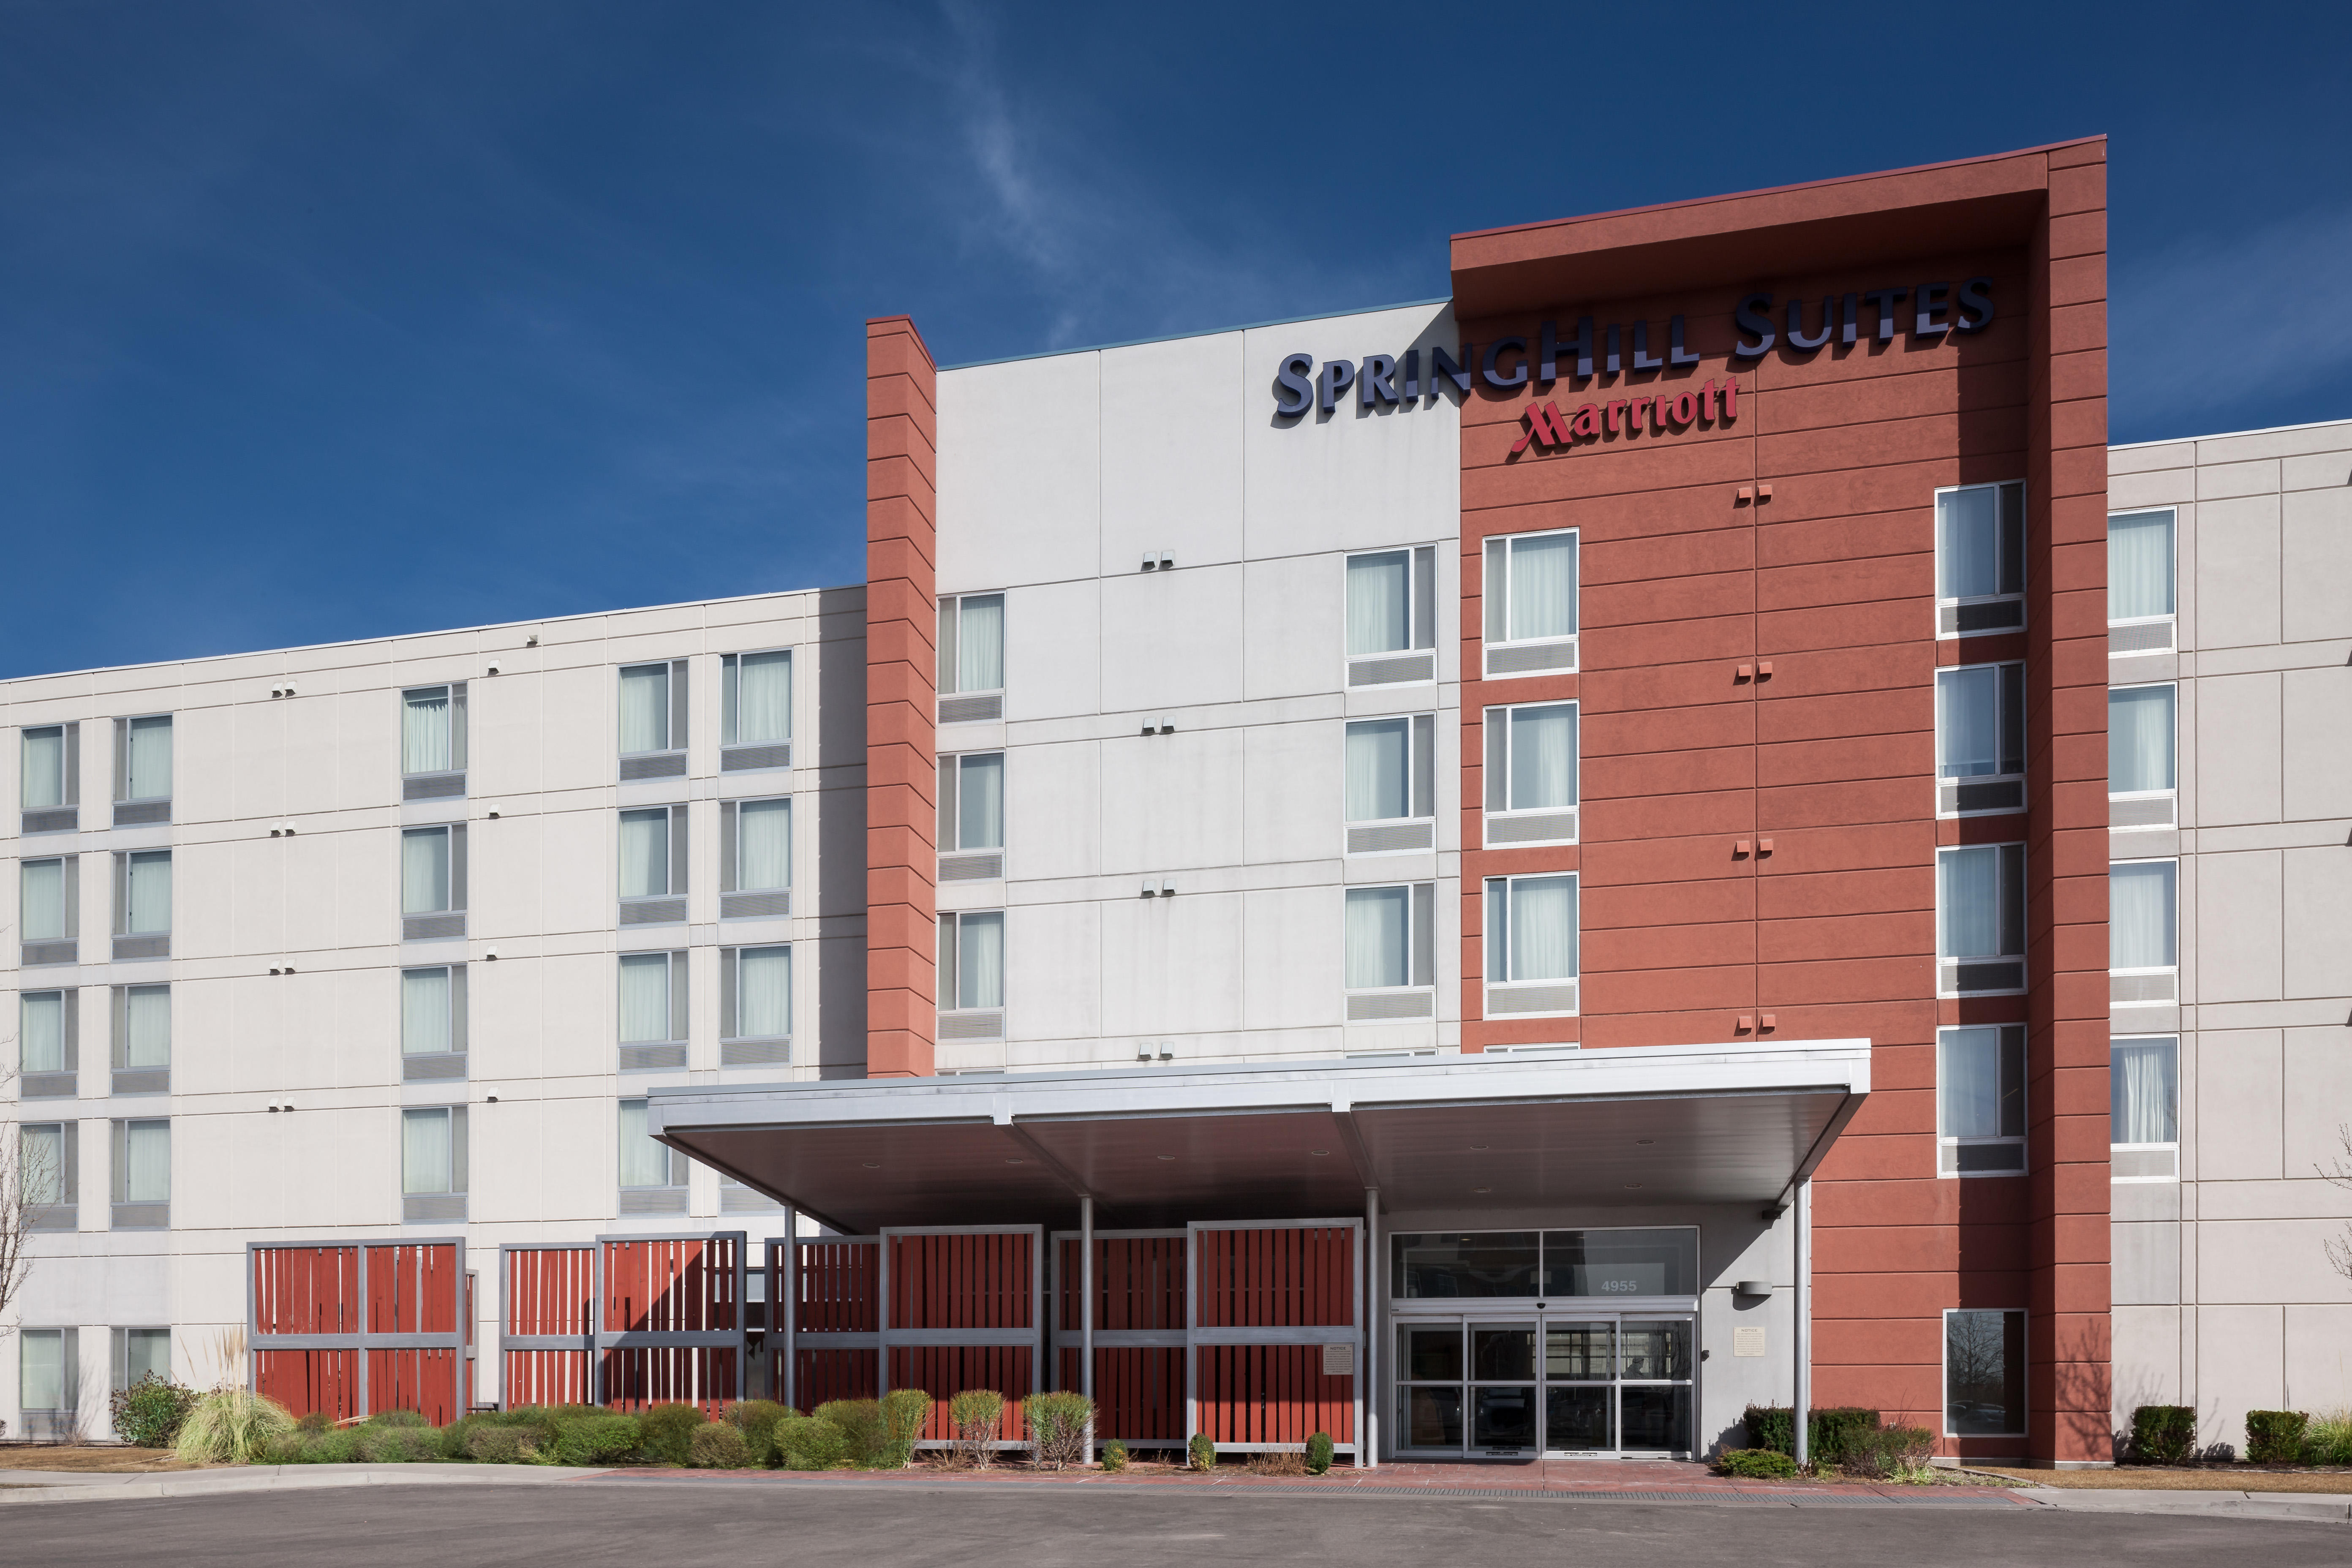 SpringHill Suites by Marriott Salt Lake City Airport image 0